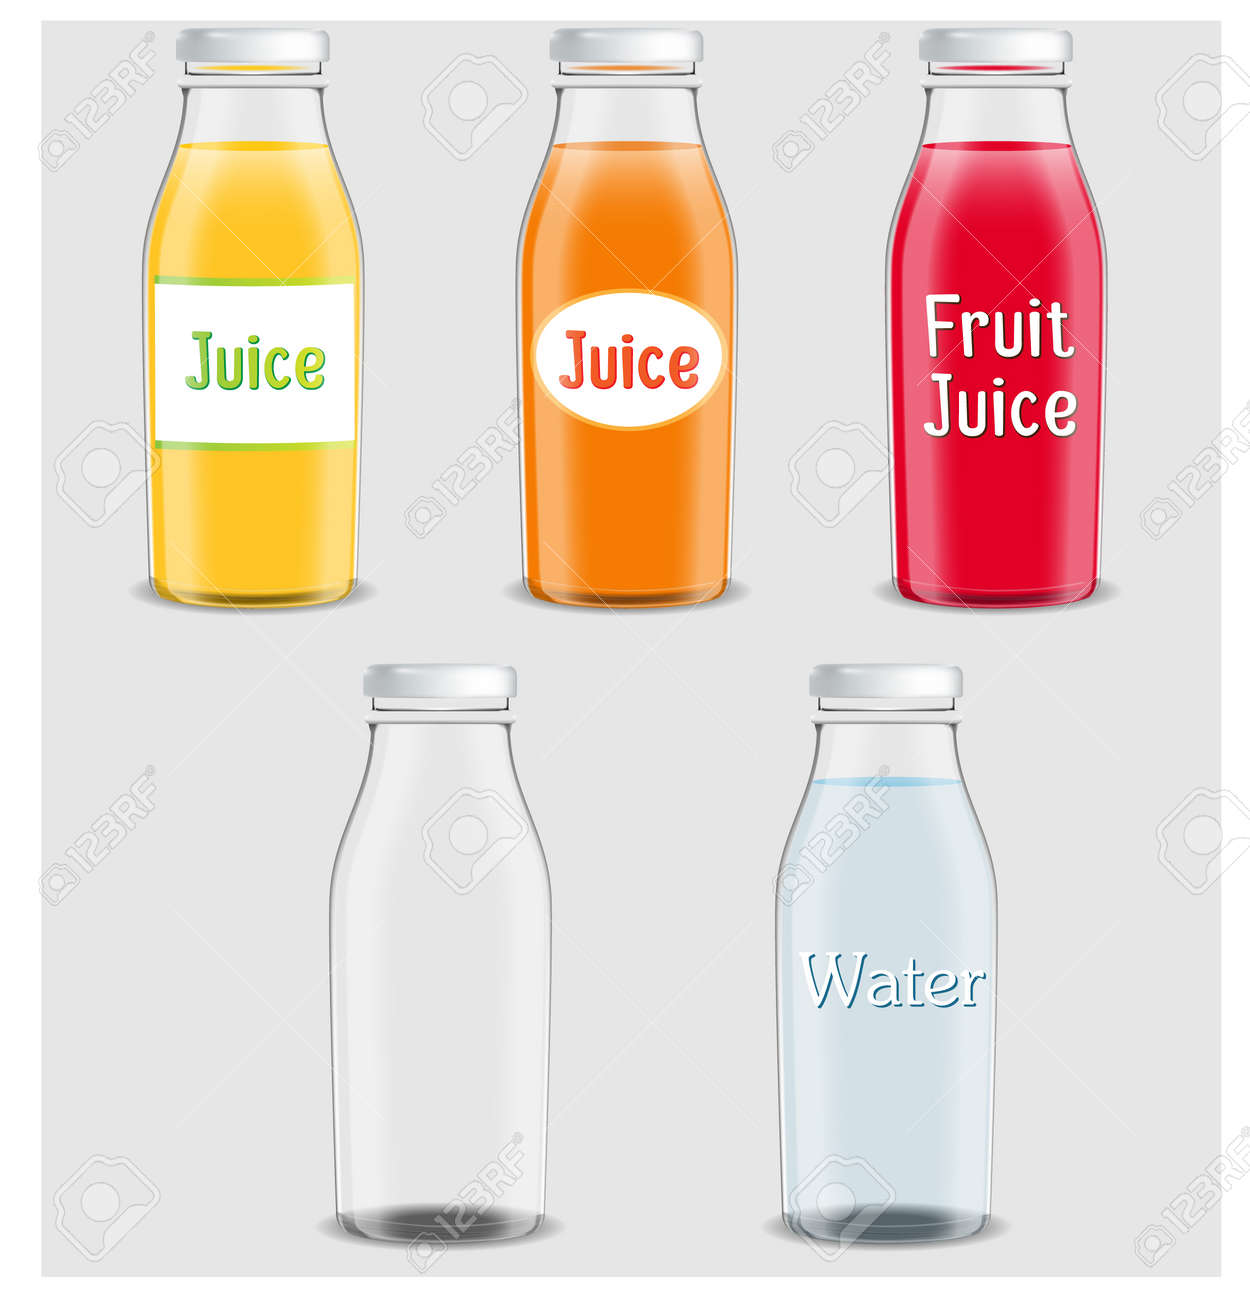 Juice products ad  Vector 3d illustration  Bottles template design